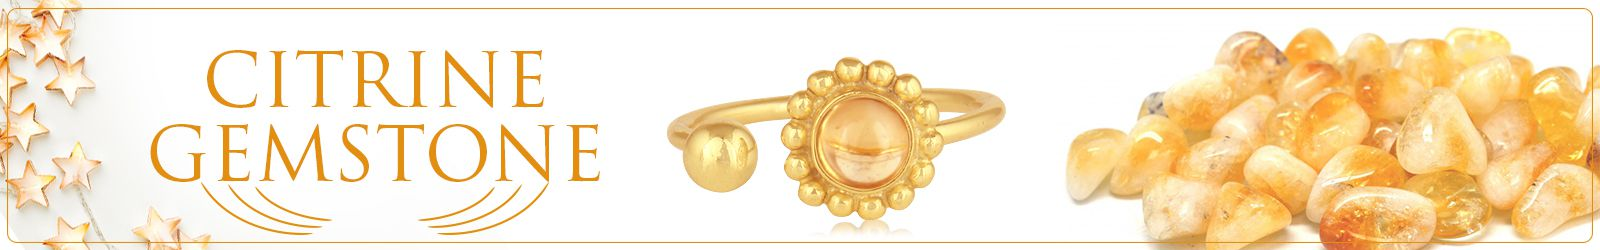 Wholesale Natural Citrine Gemstone Jewelry Manufacturer in Jaipur